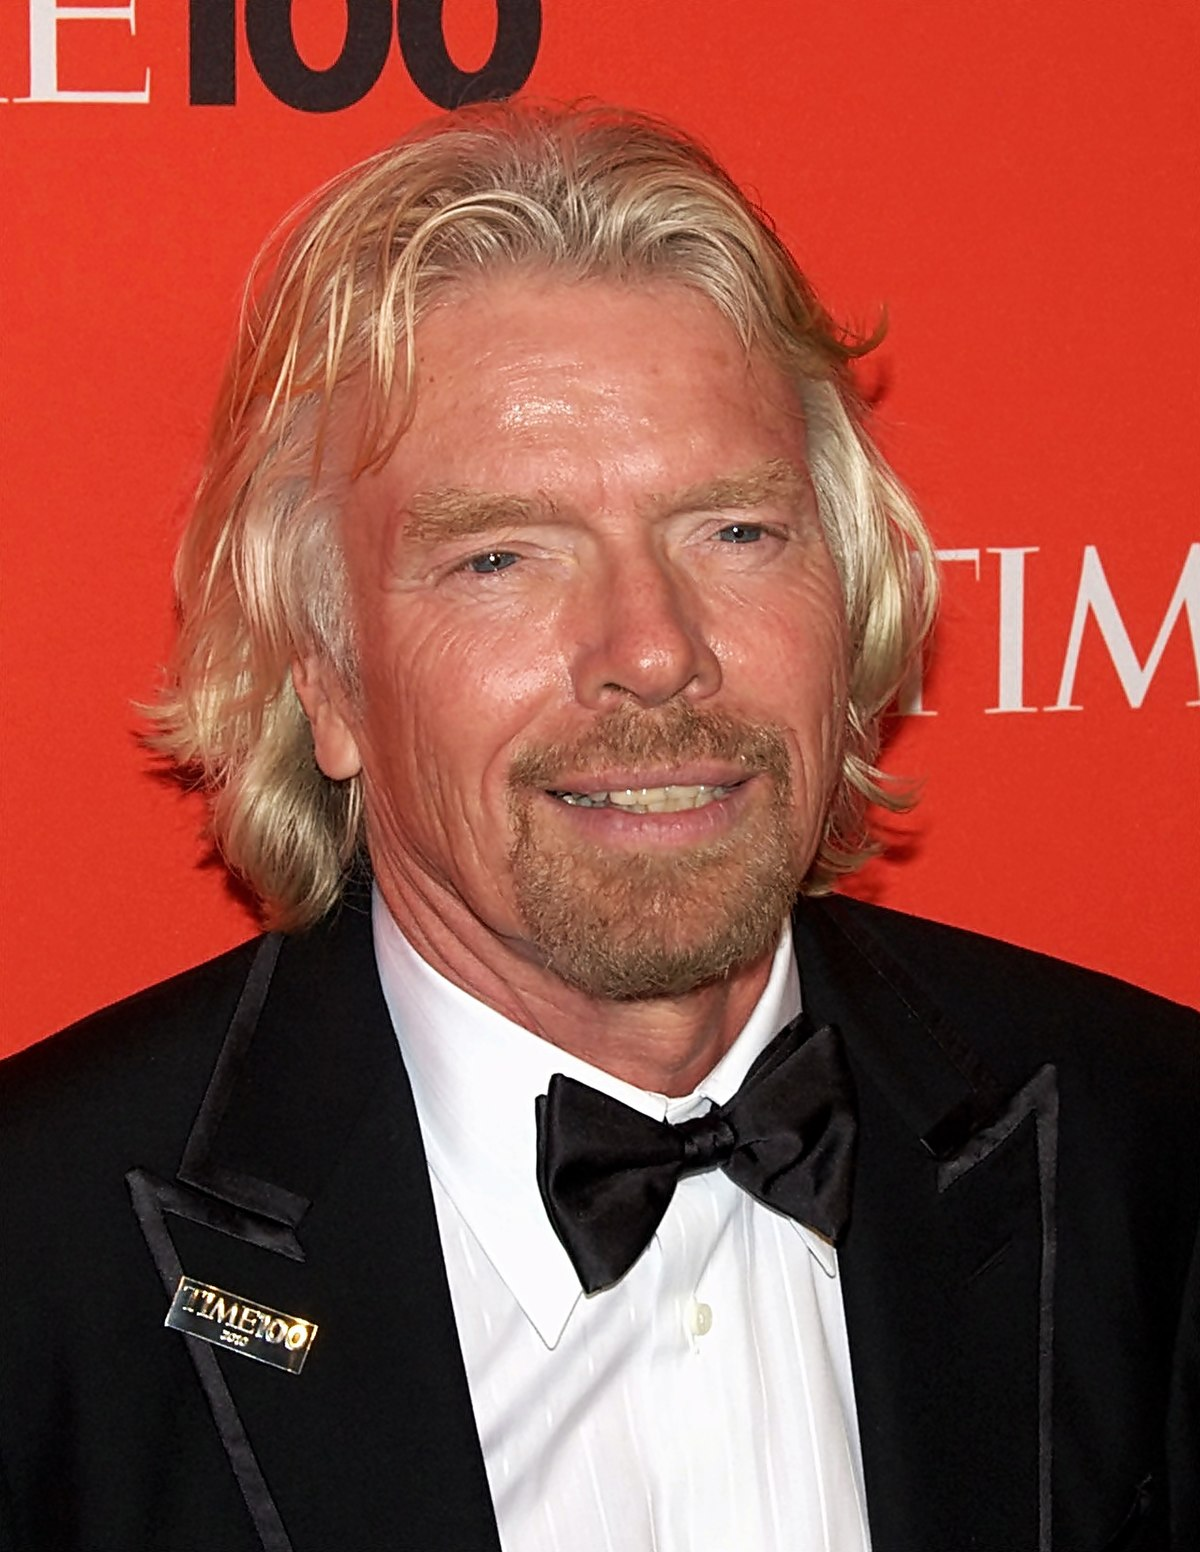 the life and business ventures of richard branson Billionaire richard branson owns so many businesses he's said that he has a hard time keeping track of them all worth more than $5 billion, he's been knighted by the british government for.